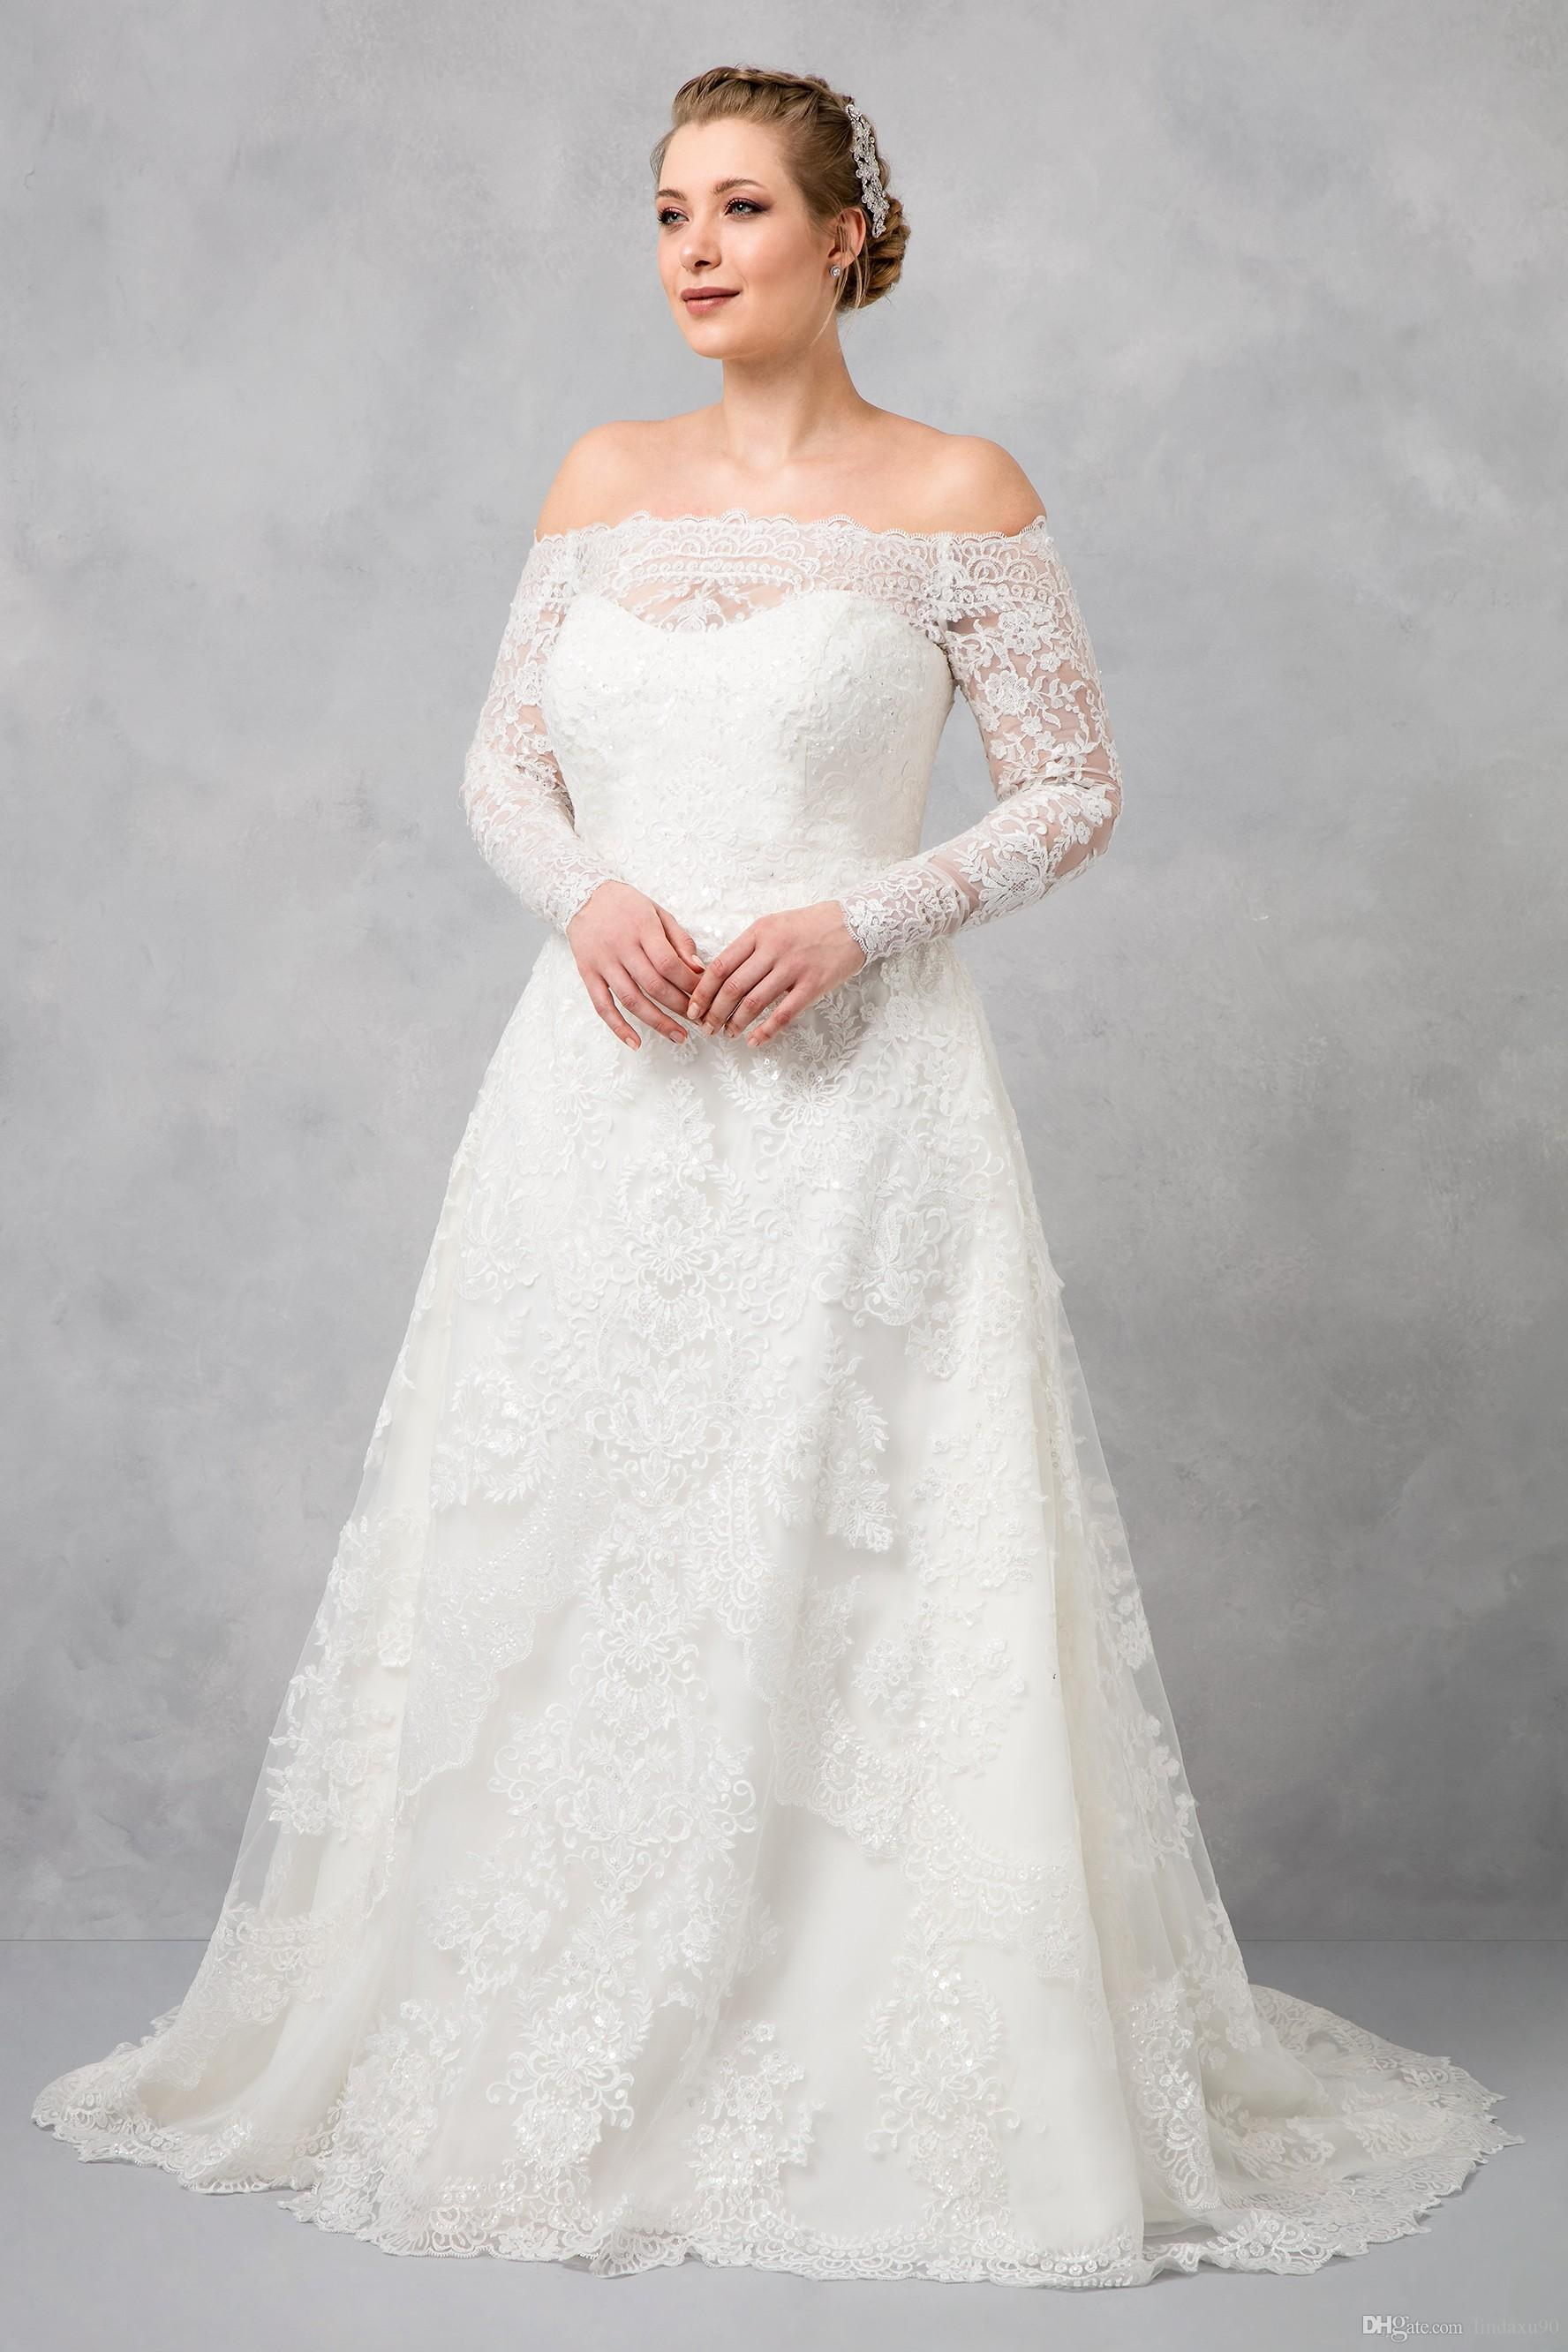 Discount Oleg Cassini Plus Size Wedding Dresses 2019 A Line Lace Appliqued  Sweep Train Country Style Bridal Gowns Long Sleeve Garden Wedding Dress ...